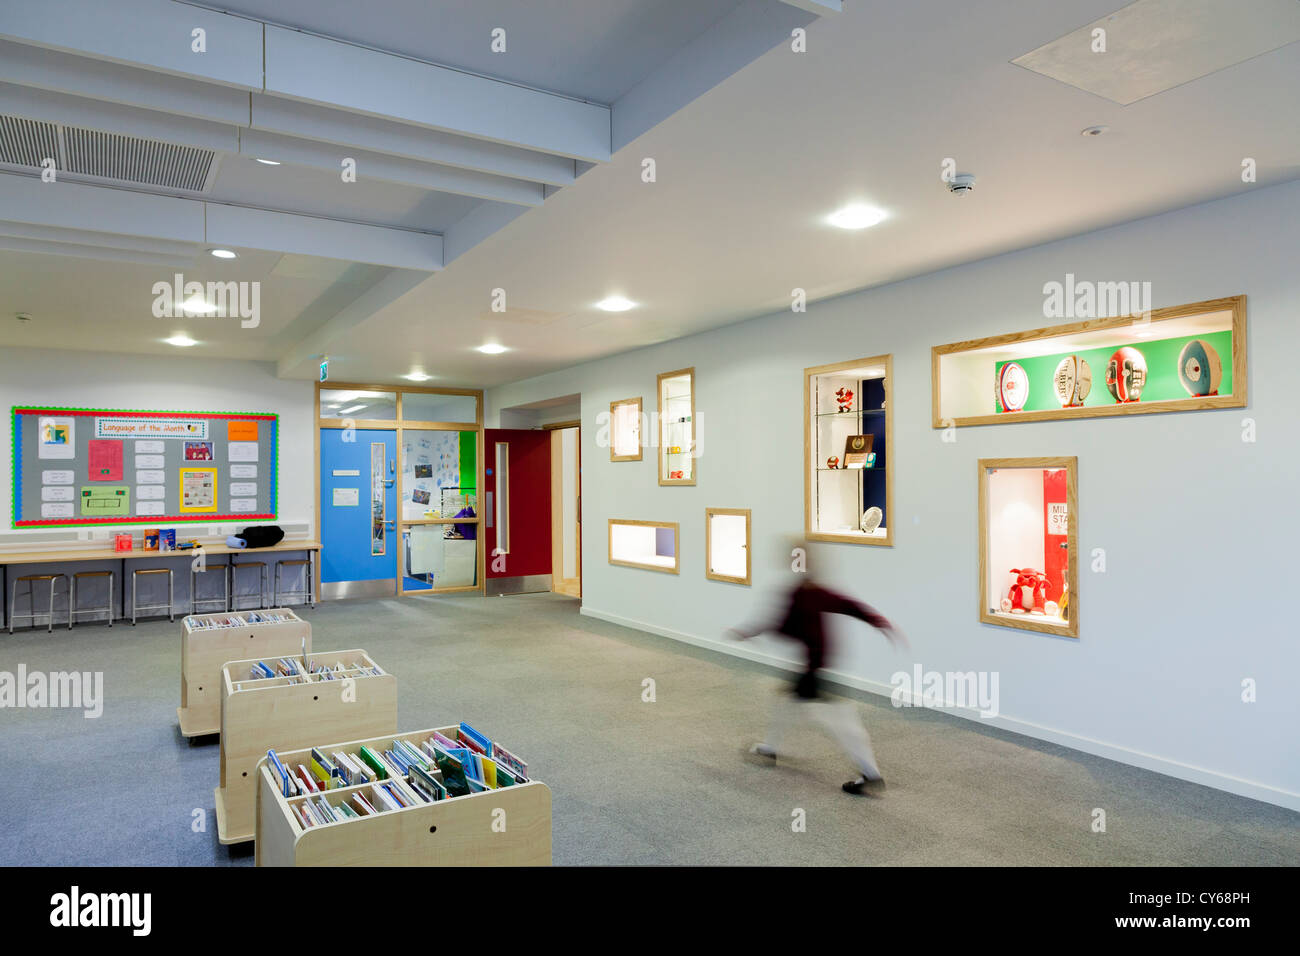 Blurred child walking through library area of primary school. - Stock Image